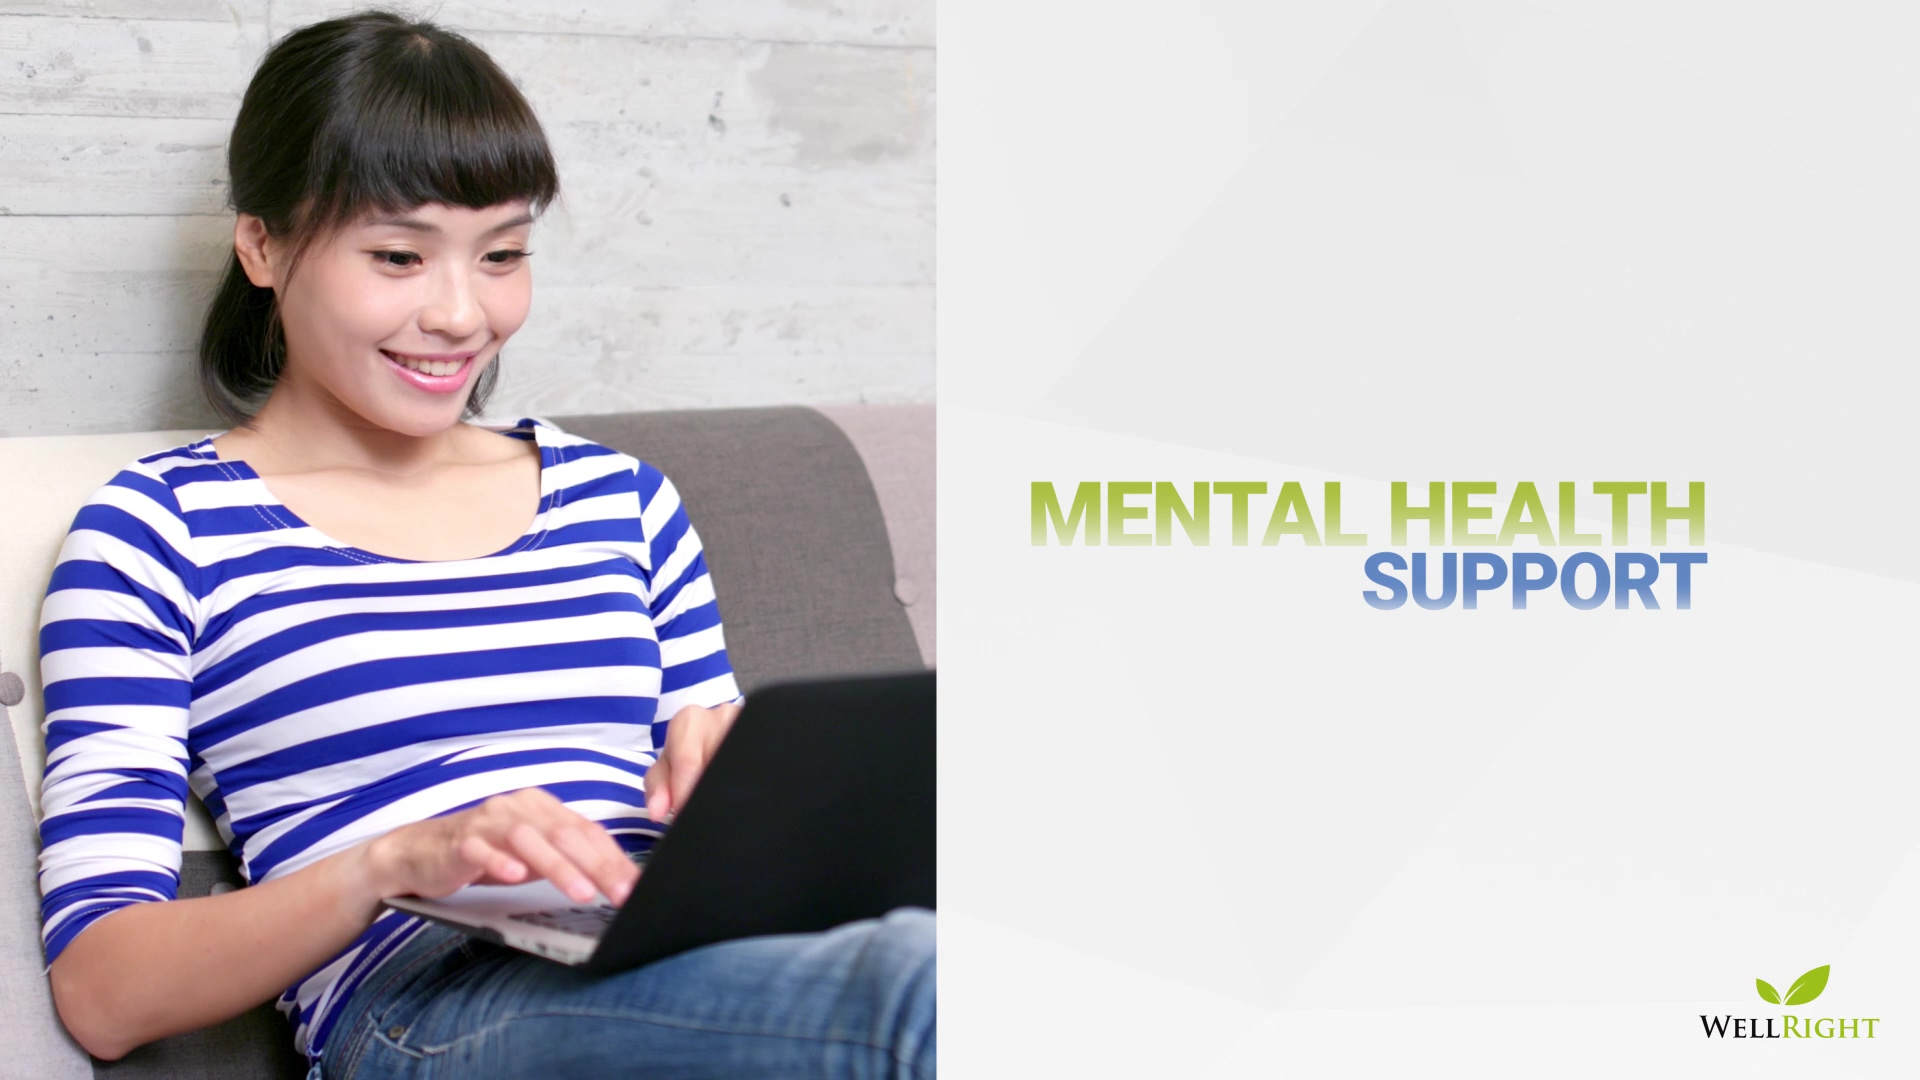 WellRight Mental Health Support